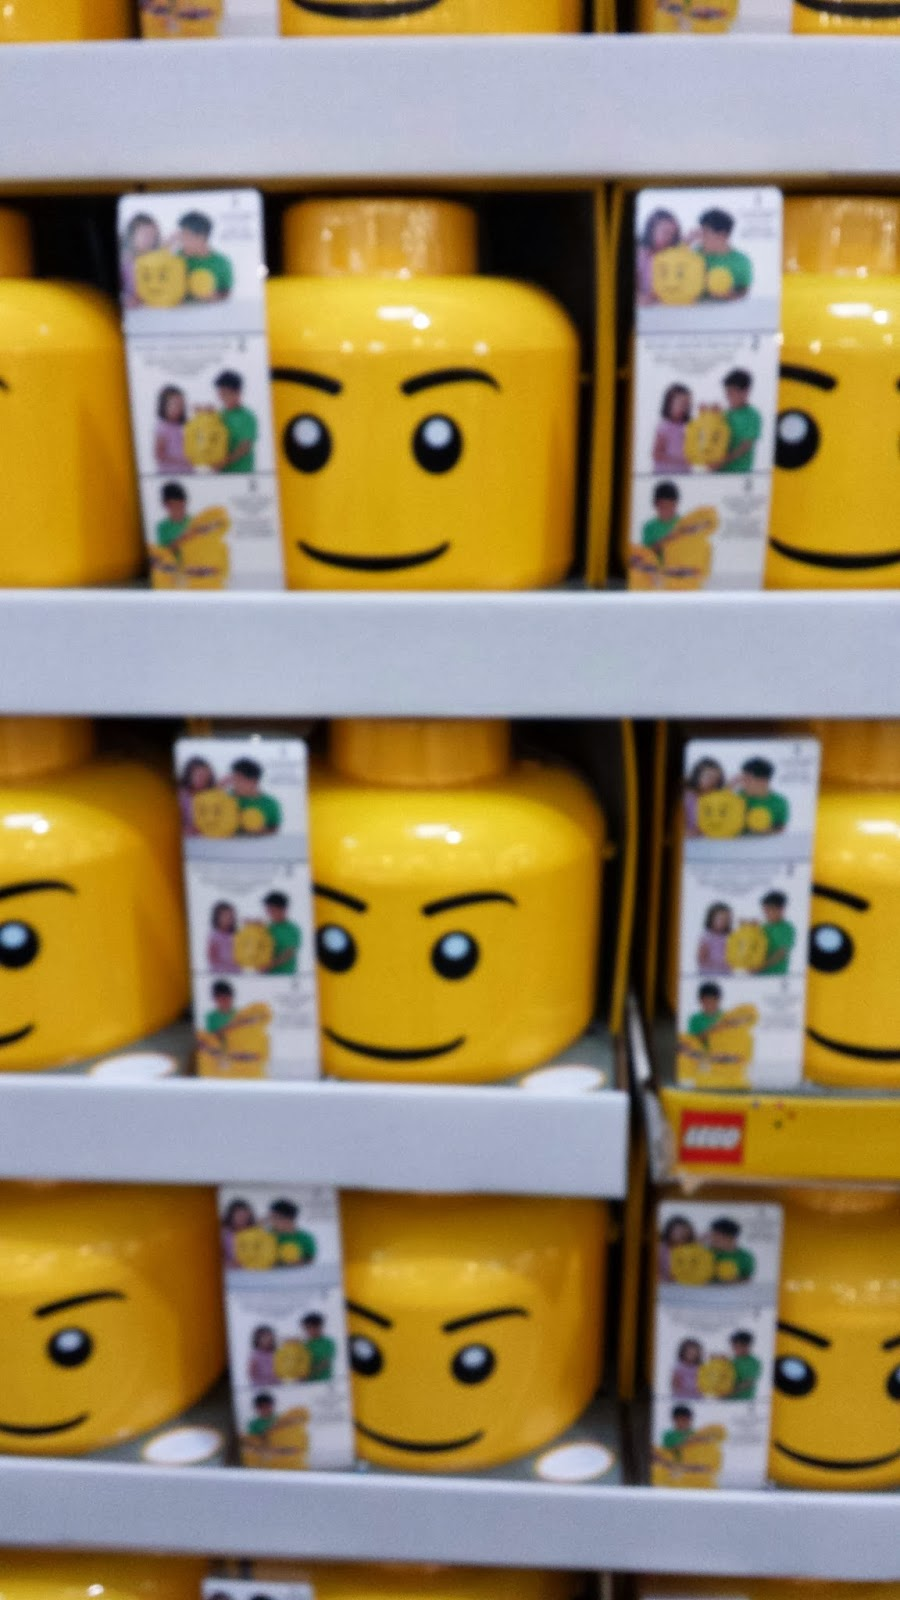 Check out these Giant Lego Mini Figure Head Storage Containers. Not only do it keep all the Lego pieces stored away but it does so in the coolest of ways! & Cathy Thinking Out Loud: ADD THIS TO YOUR GIFT GUIDE! GIANT LEGO ...